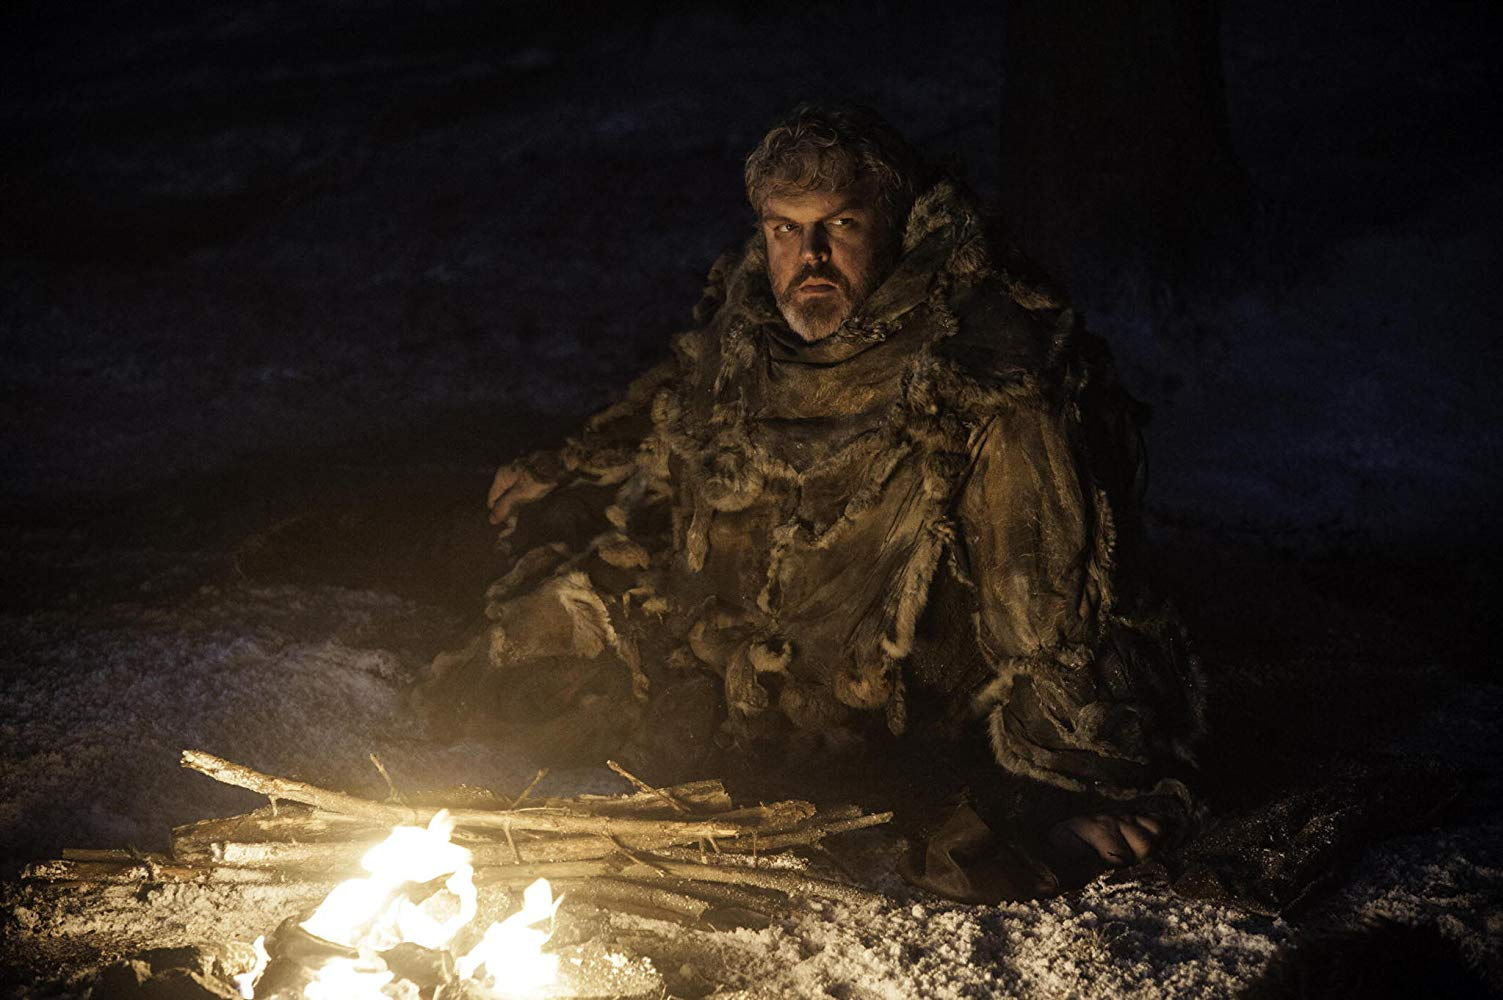 Kristian Nairn as Hodor in 'Game of Thrones'. (Source: IMDB)